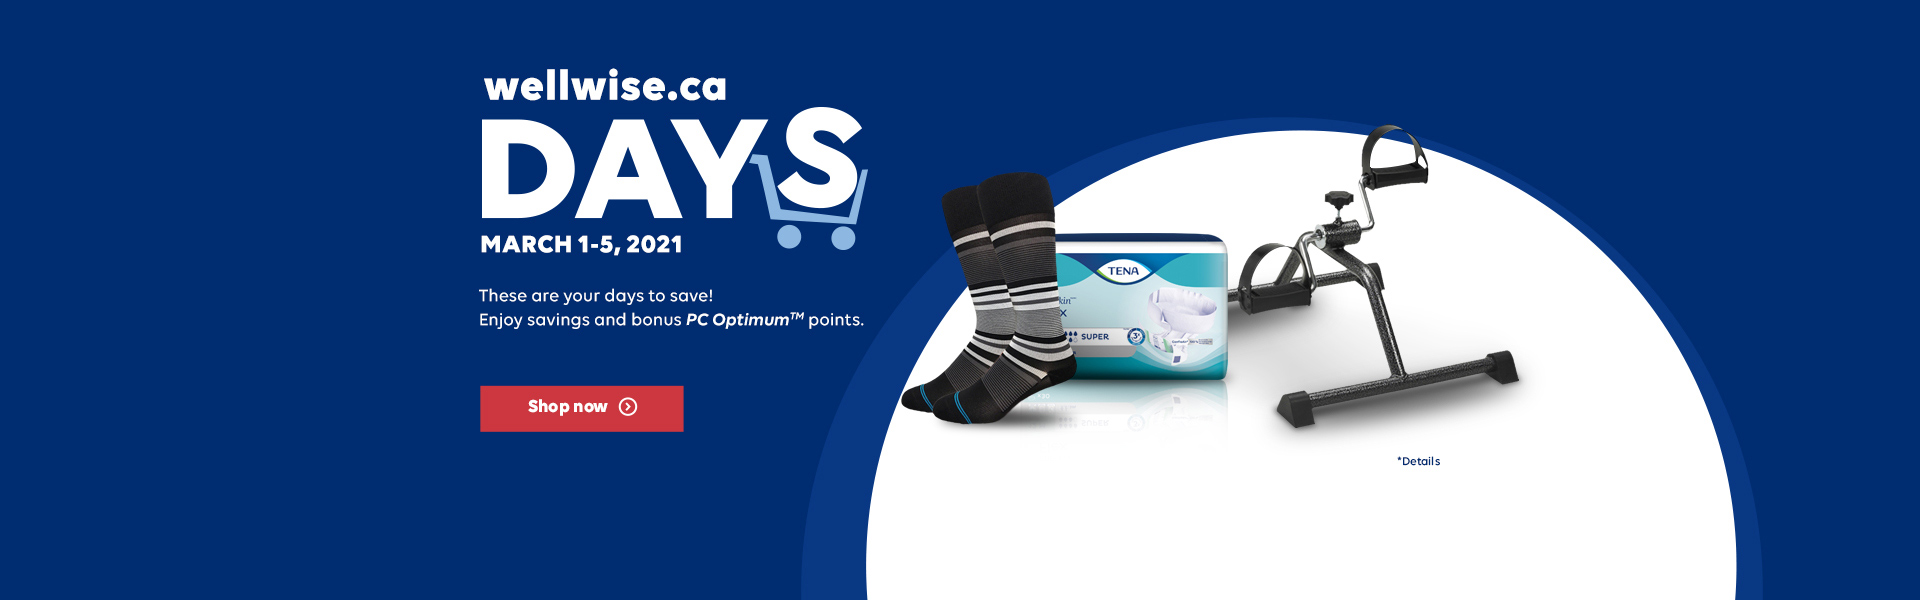 wellwise.ca DAYS. March 1 - 5. Explore online offers at wellwise.ca on your essential health & wellness needs.